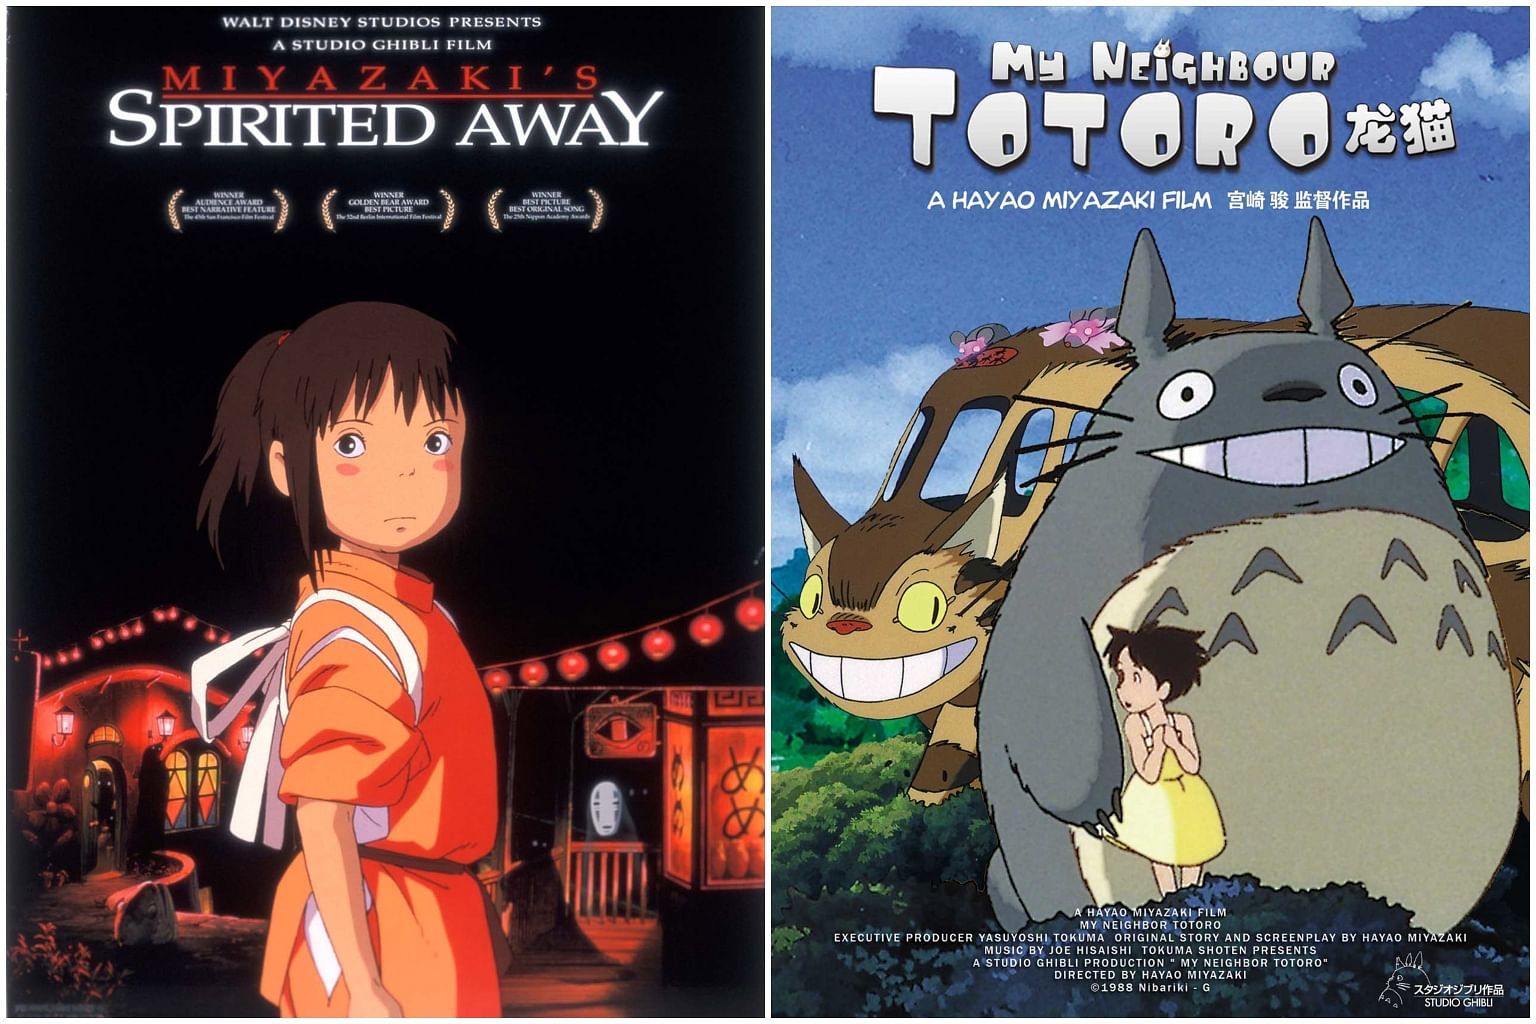 Studio Ghibli Films Such As Spirited Away And My Neighbor Totoro To Stream On Netflix Entertainment News Top Stories The Straits Times